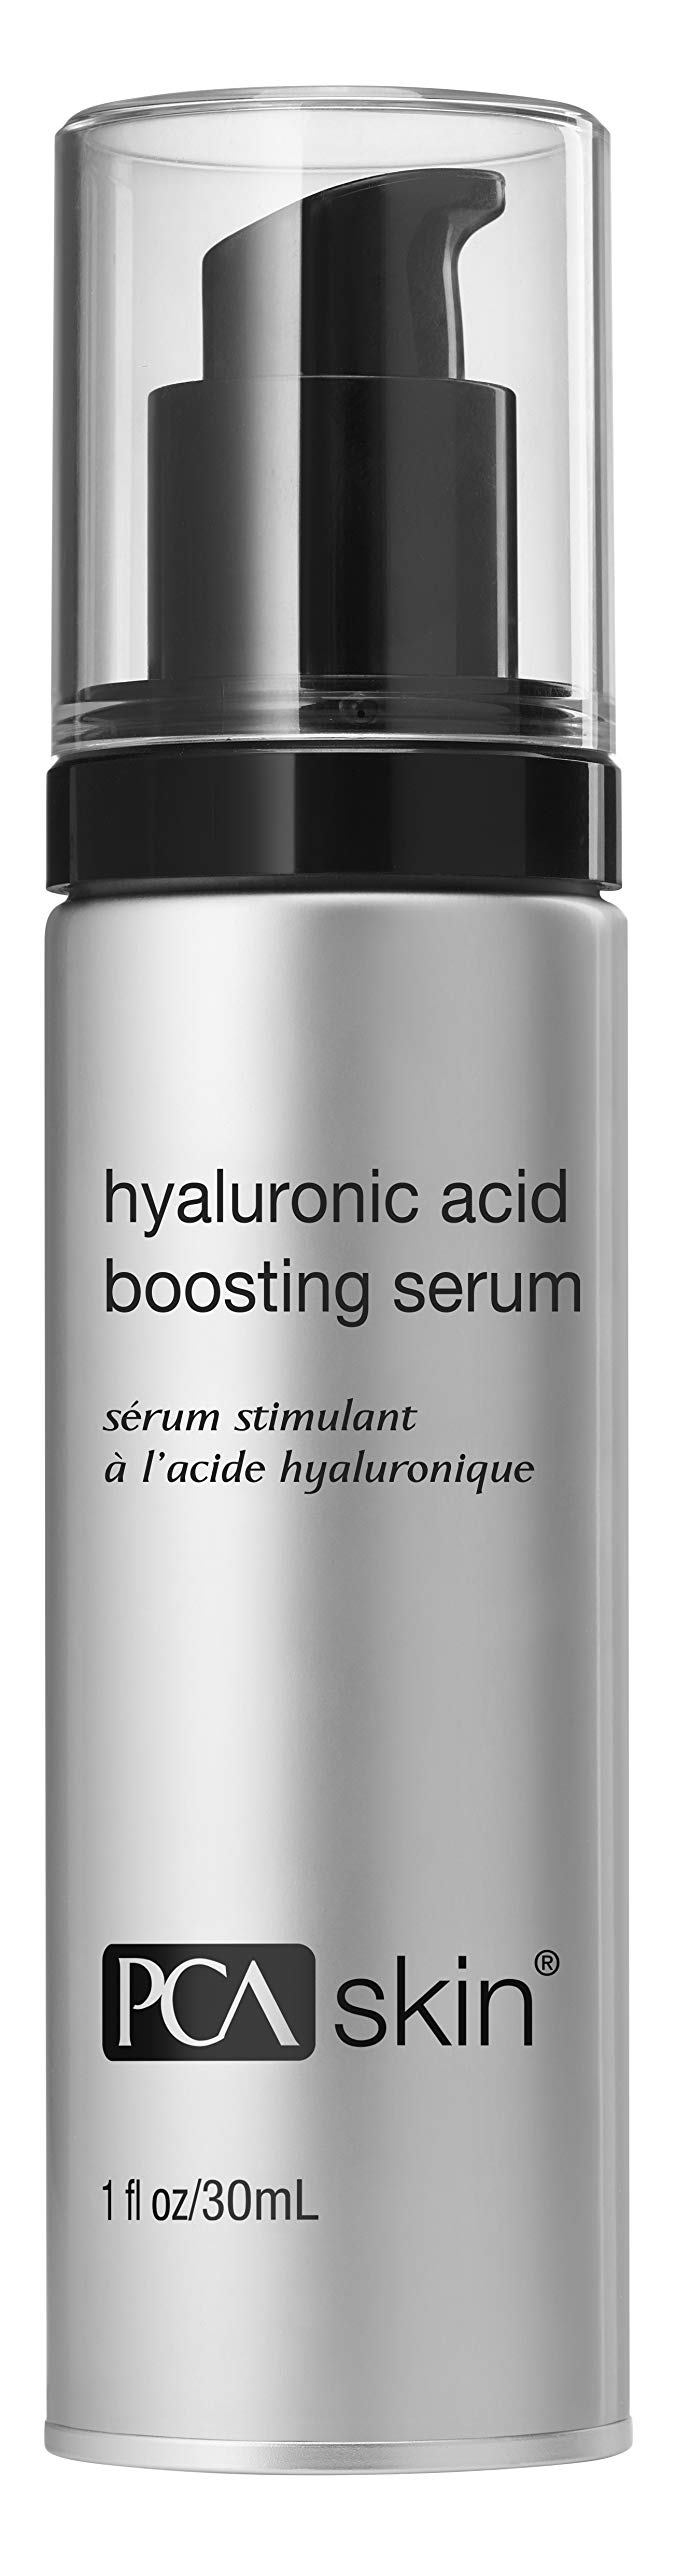 PCA SKIN Hyaluronic Acid Boosting Serum, Anti Aging & Moisturizing Treatment with Niacinamide, 1 fluid ounce by PCA SKIN